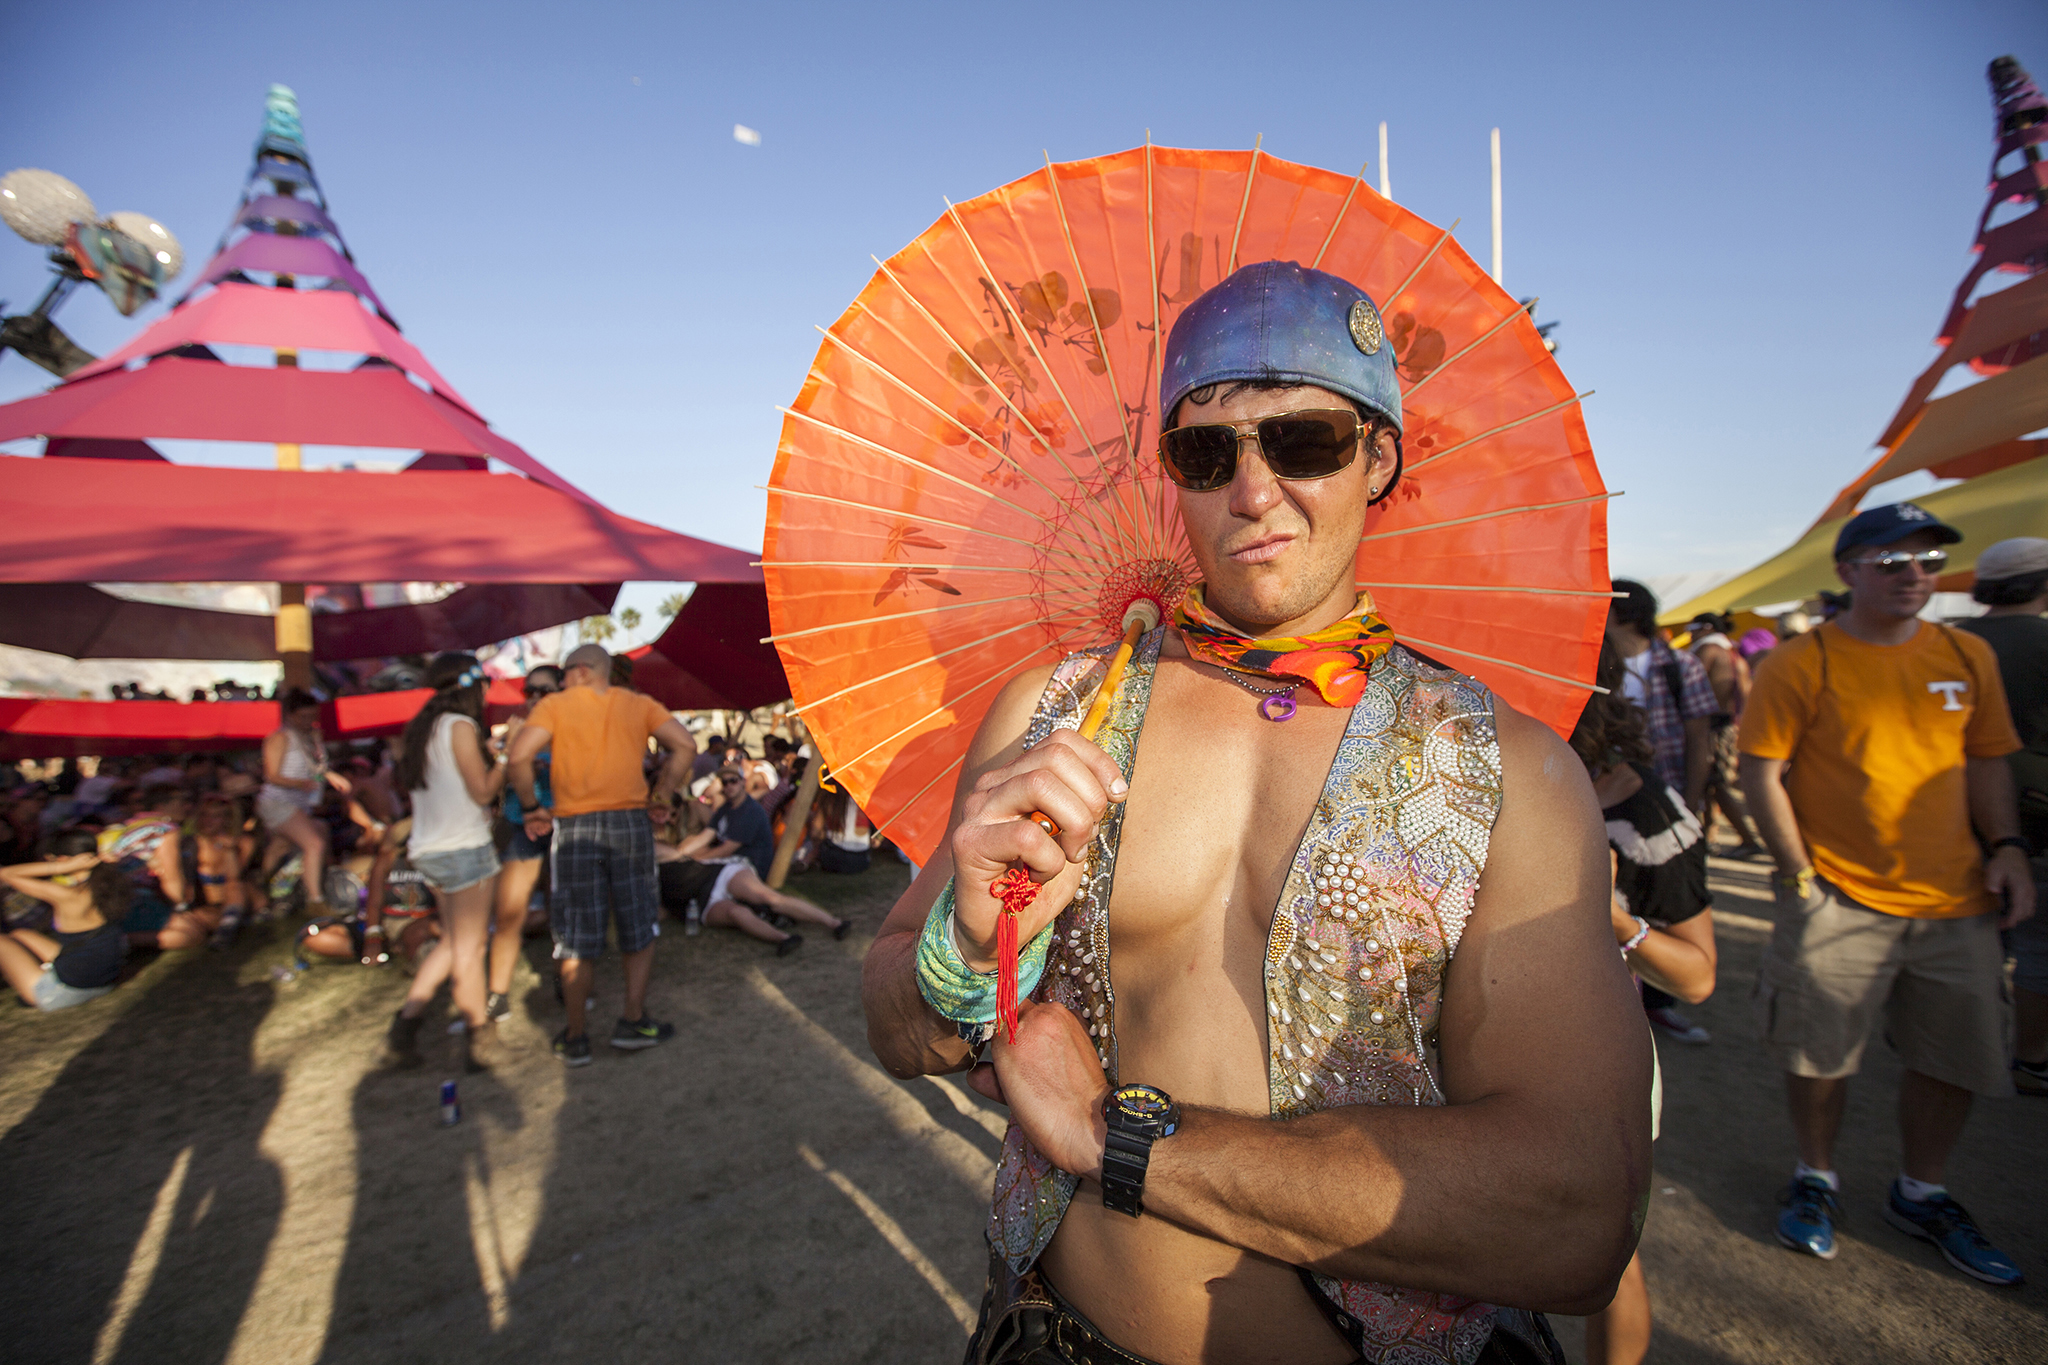 Our 100 best photos from Coachella 2013